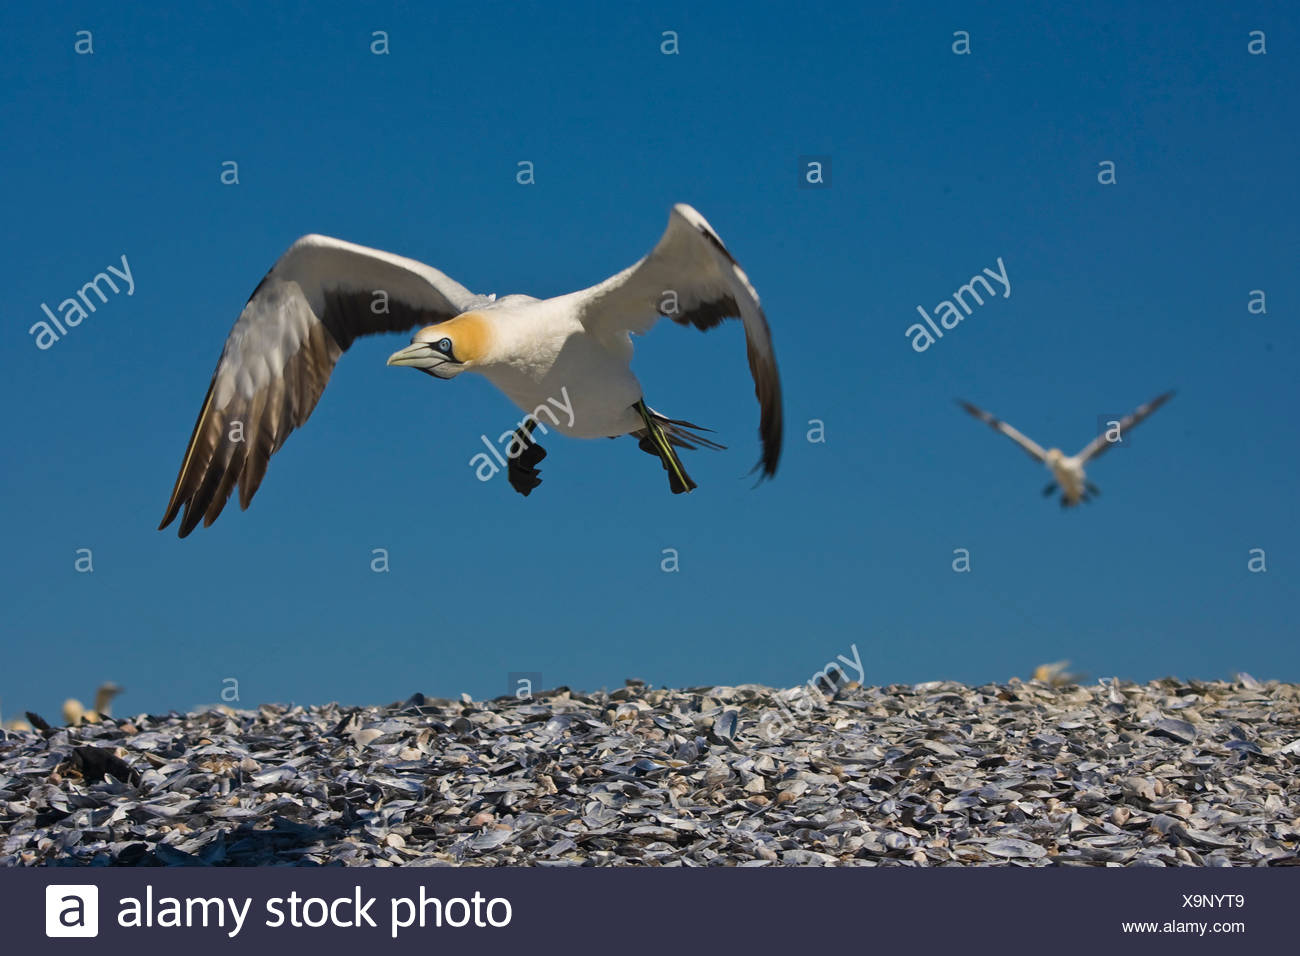 Flying Cape Gannet, Bird Island, South Africa - Stock Image